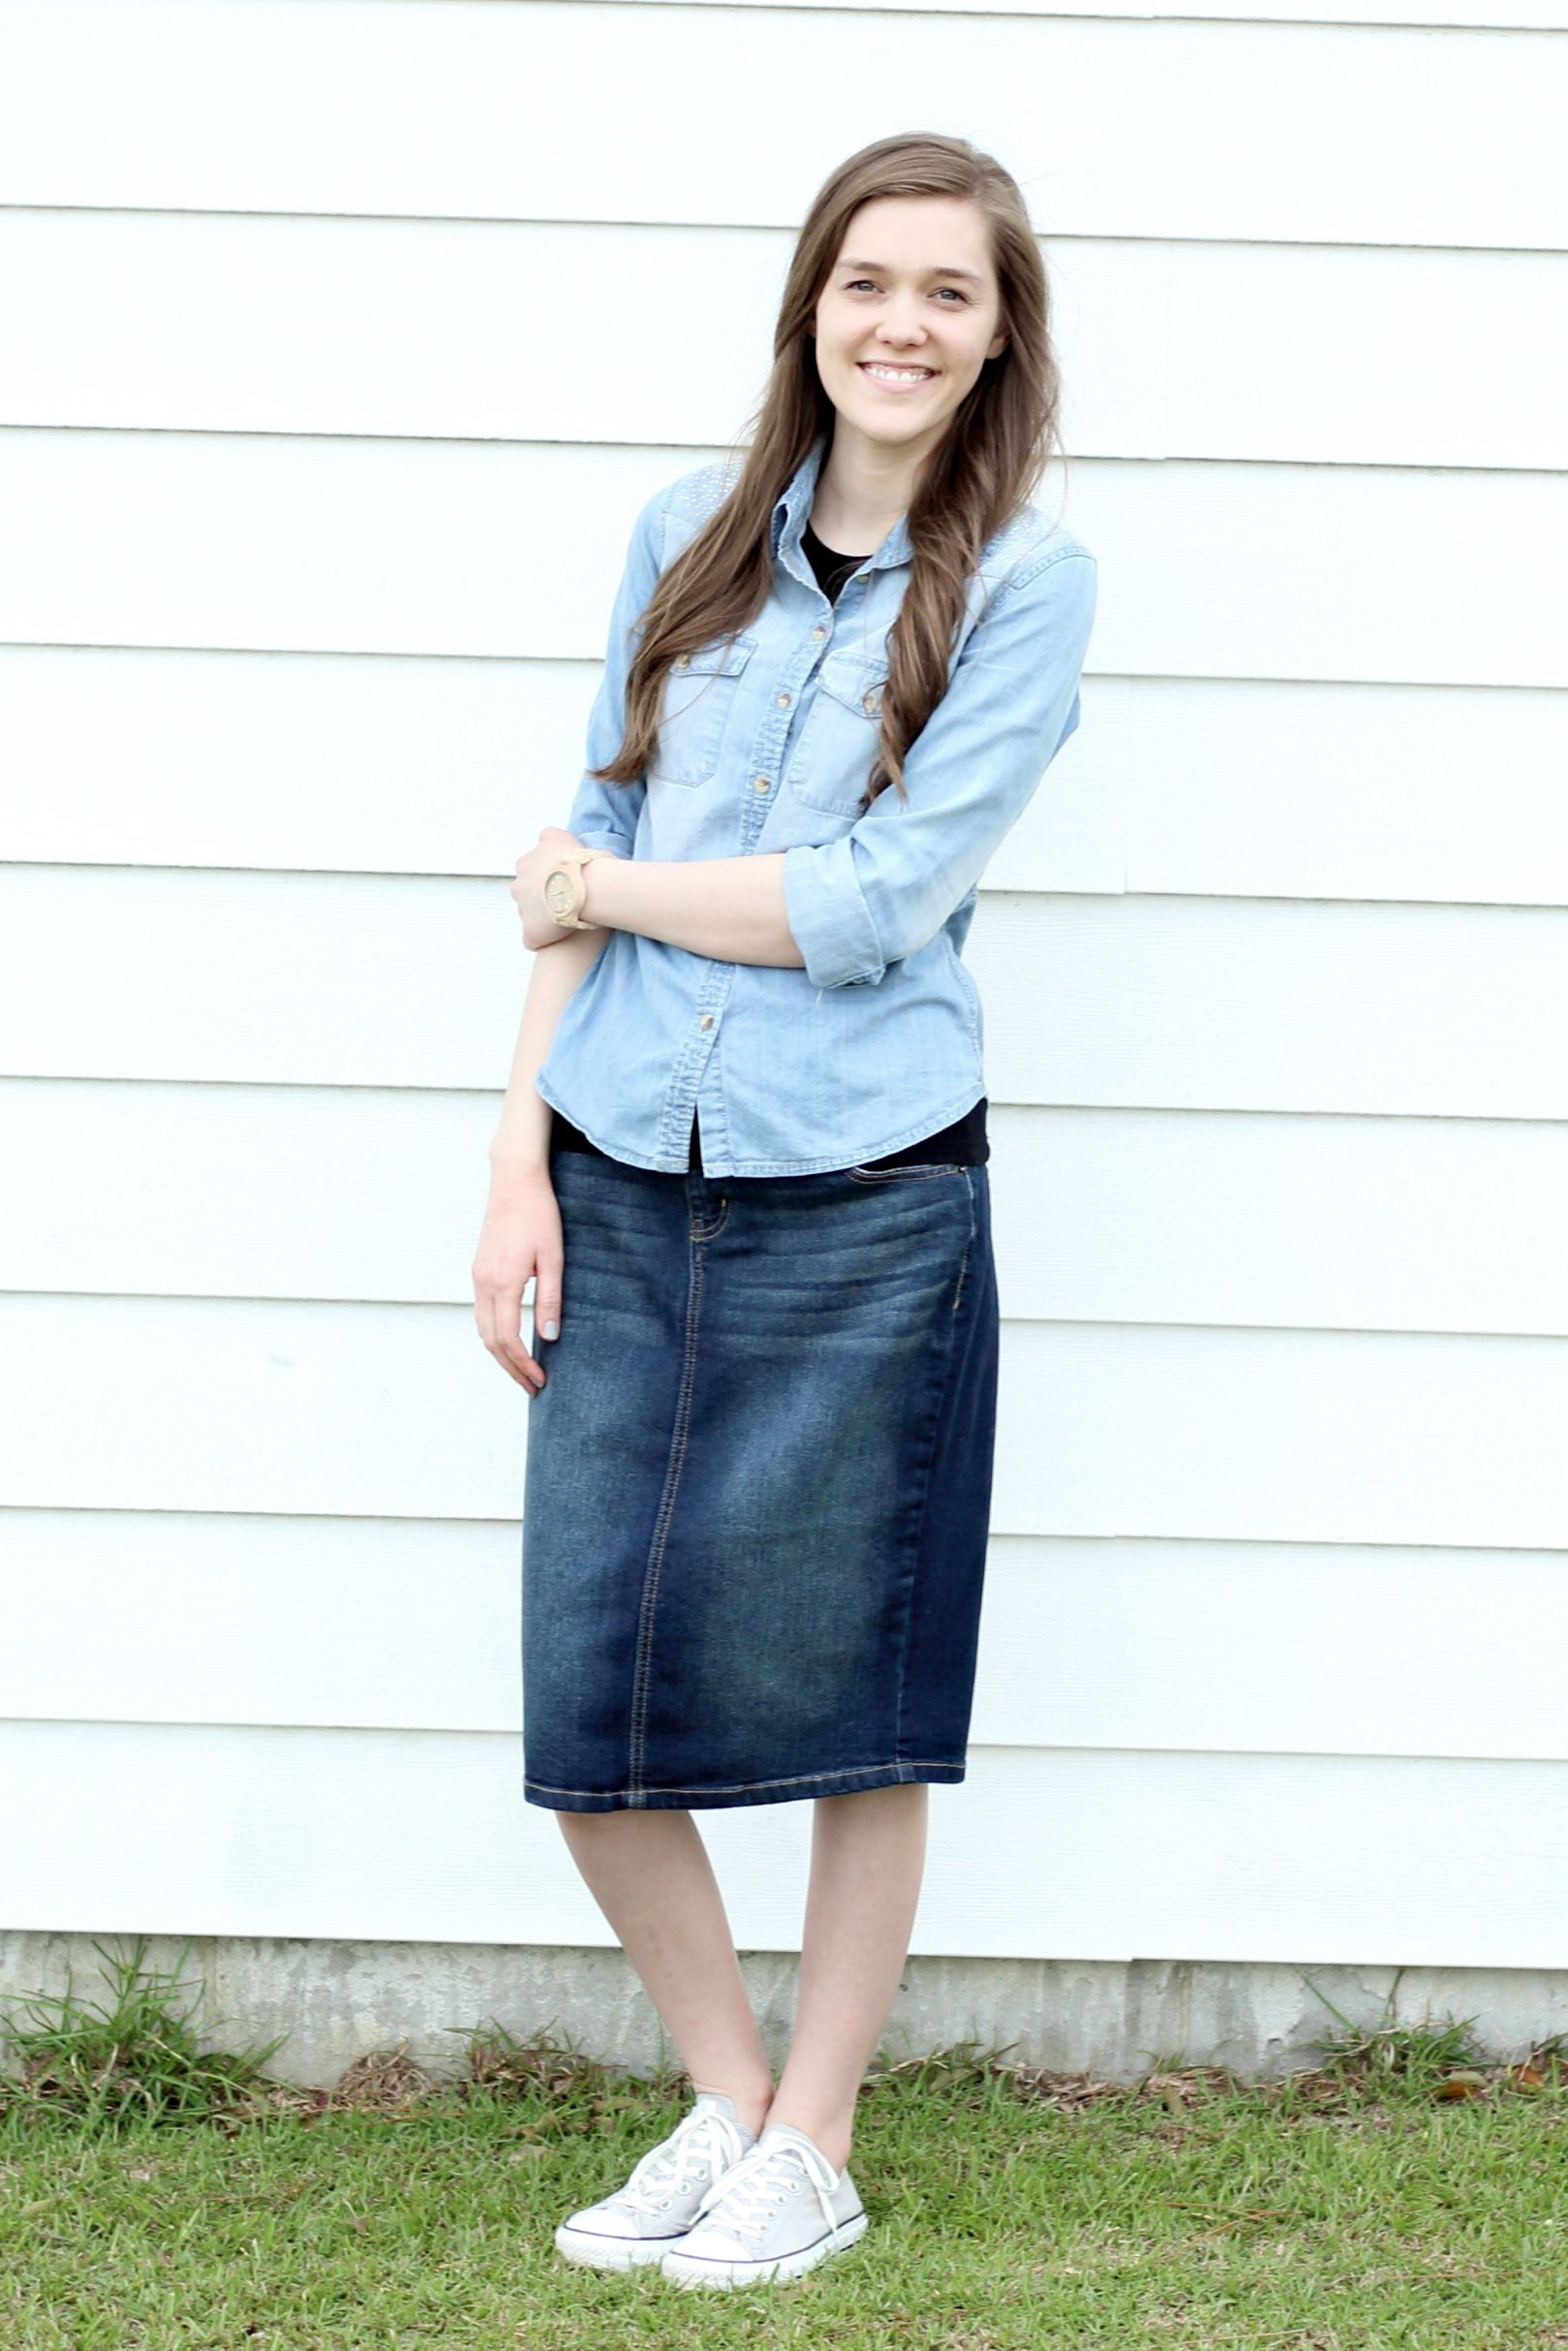 24c245a716c Modest Outfit Idea  Chambray Shirt  Denim Skirt  Converse  Denim on Denim